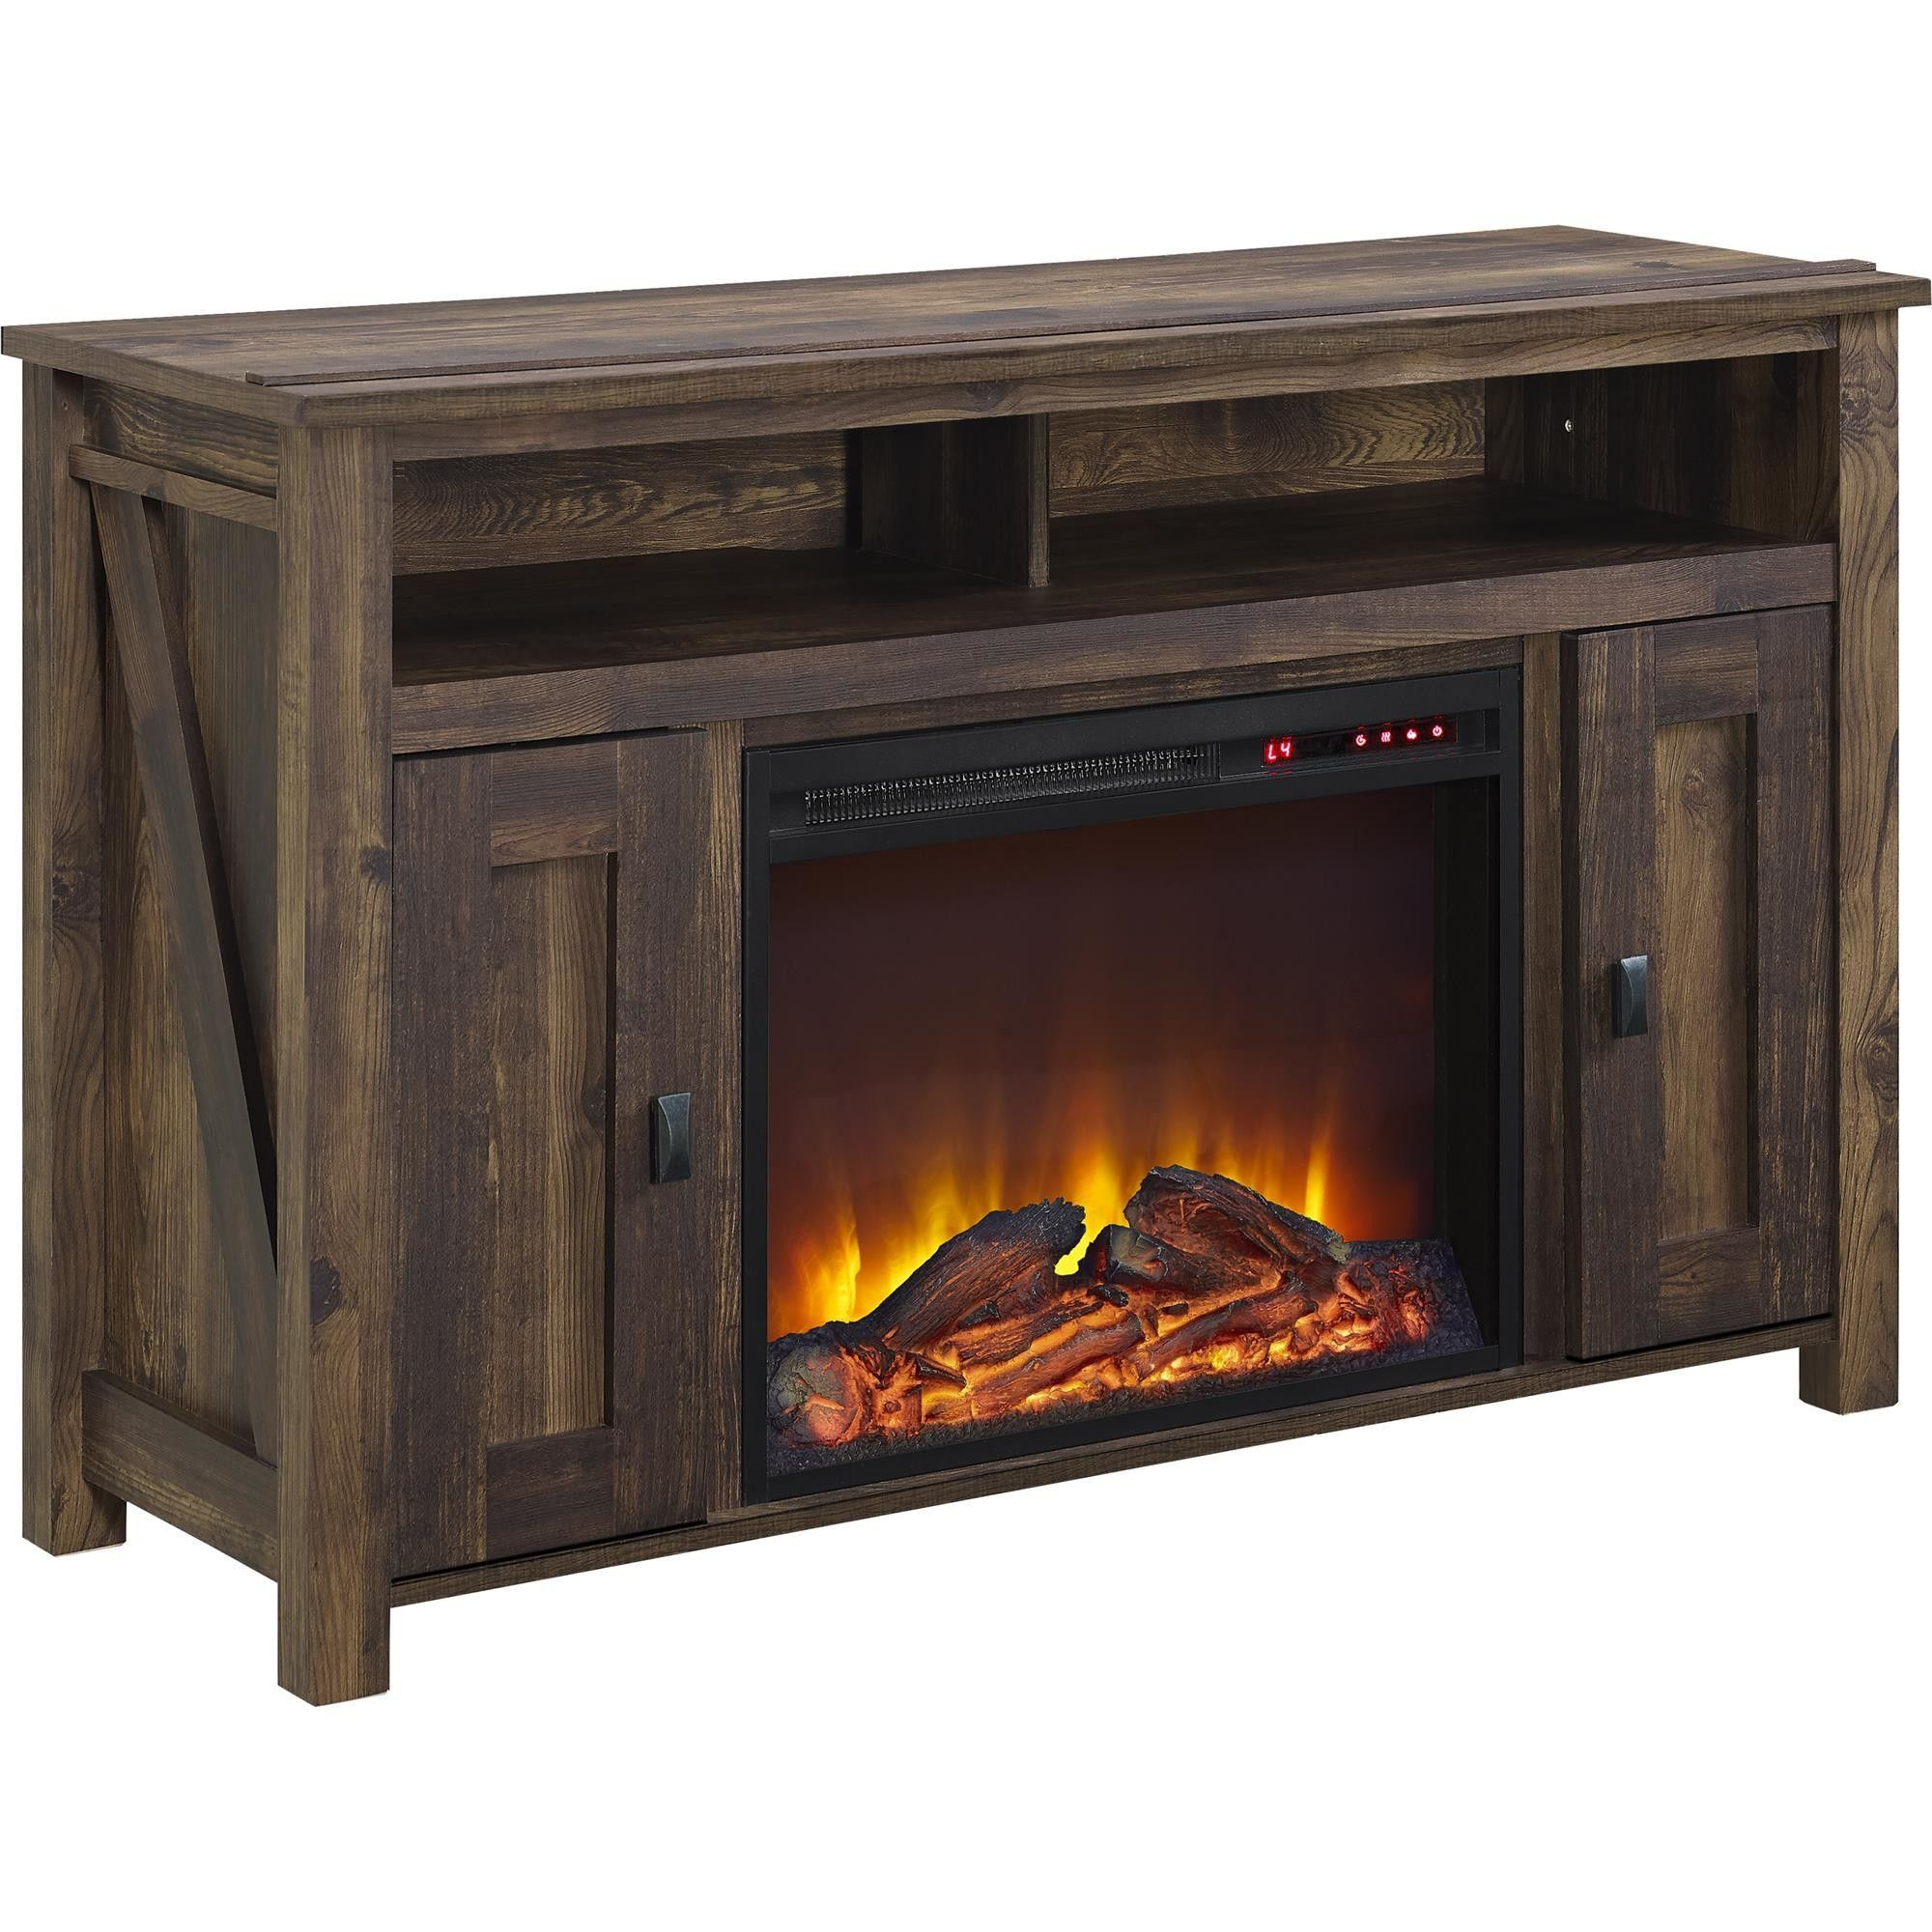 Hemet Fireplace Part - 24: Explore Fireplace Ideas, Tv Stand With Fireplace, And More!